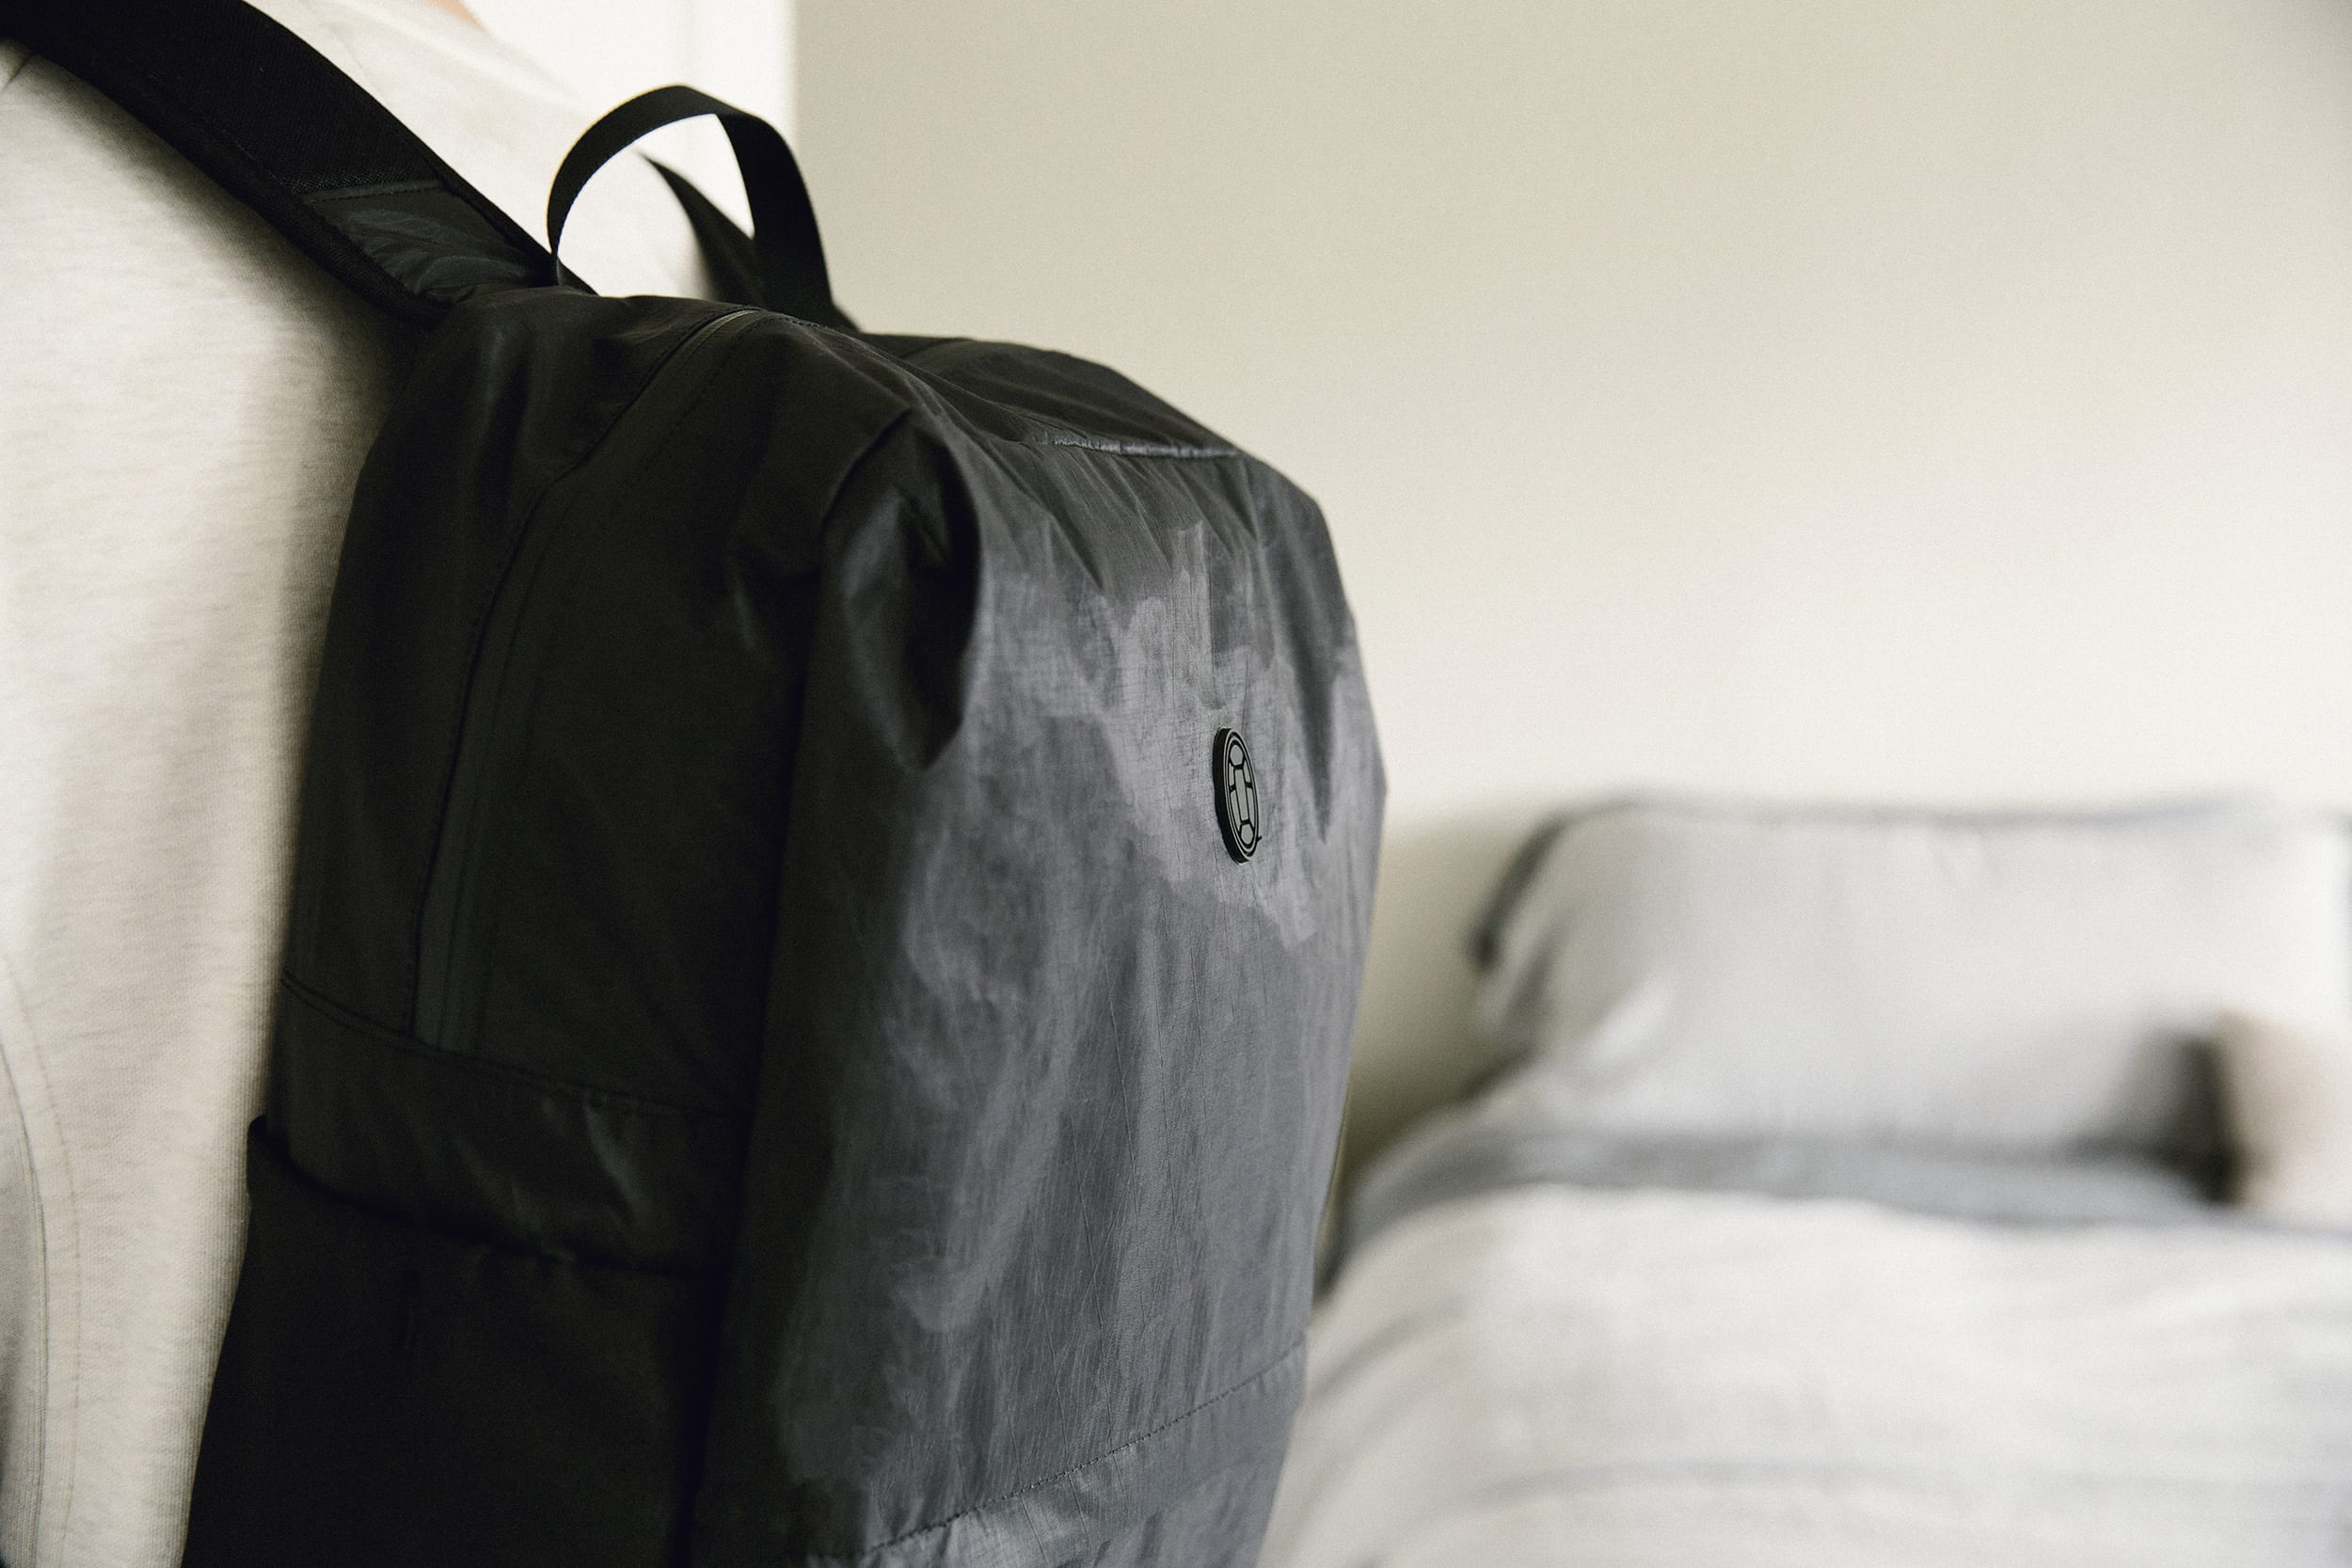 72d7f876651d How to Keep Your Luggage From Stinking